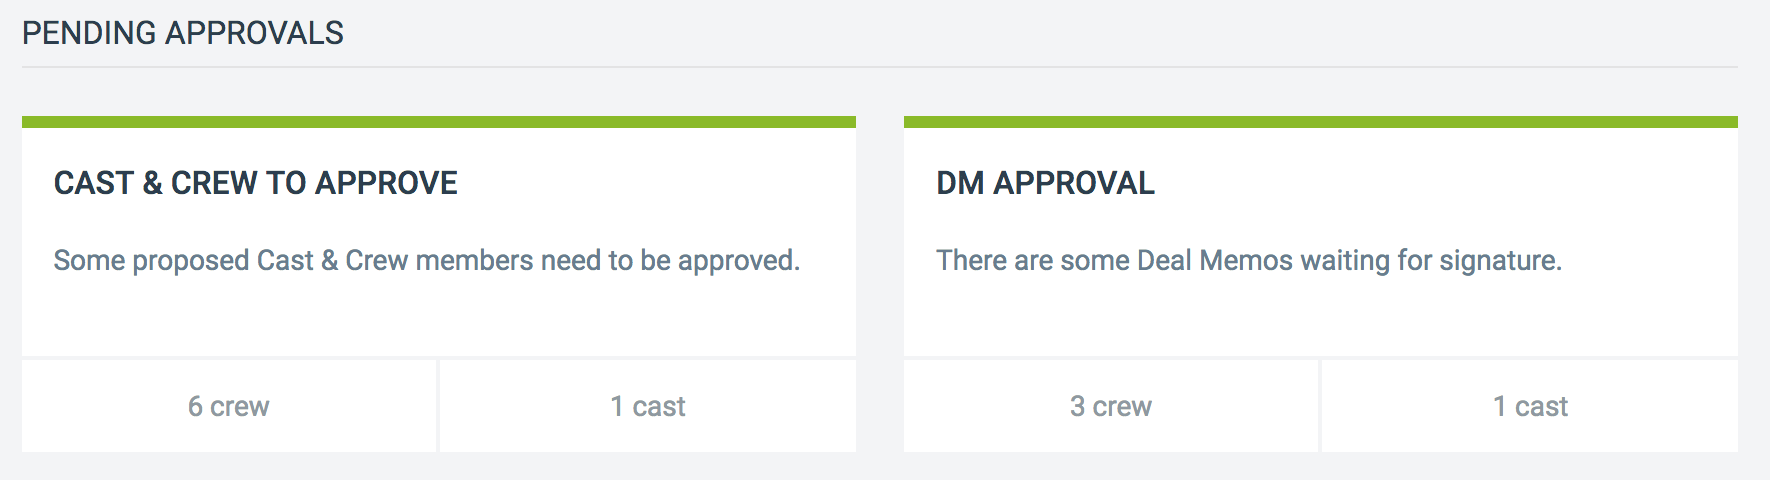 29-pending_approvals.png